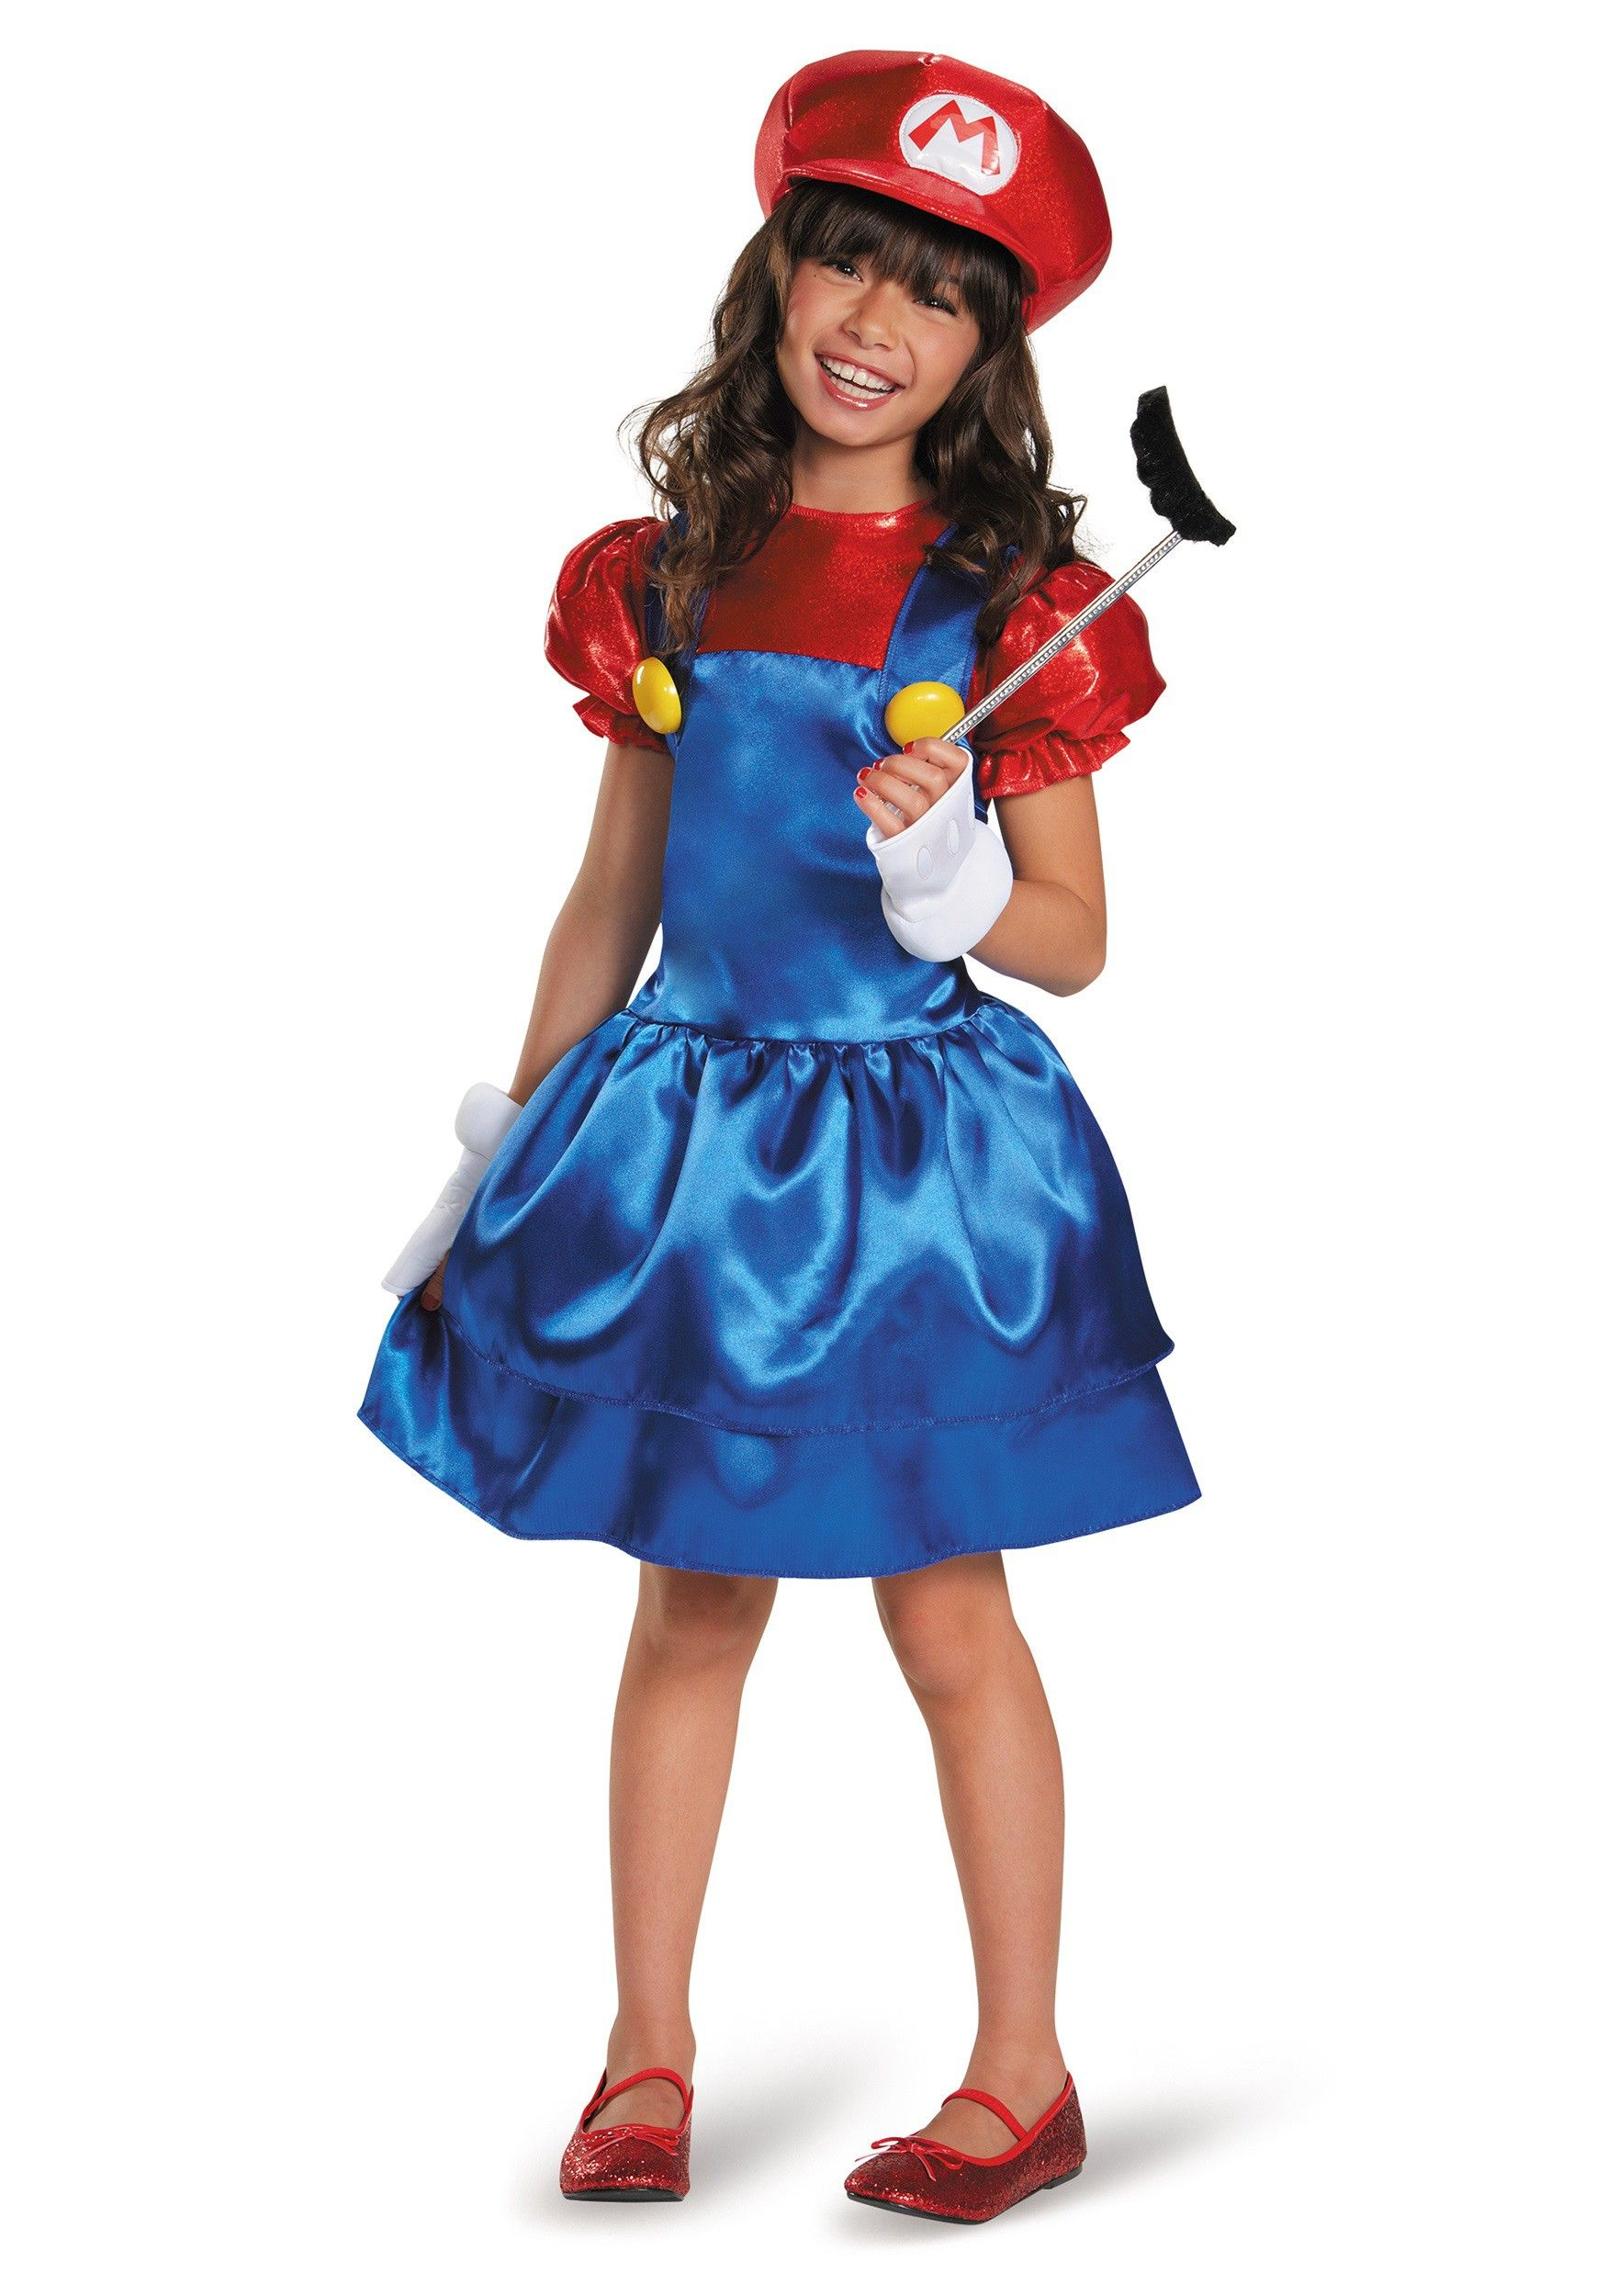 Halloween costumes  sc 1 st  Pinterest & Pin by Jalene Zabrucky on Chiara Zabrucky | Pinterest | Halloween ...